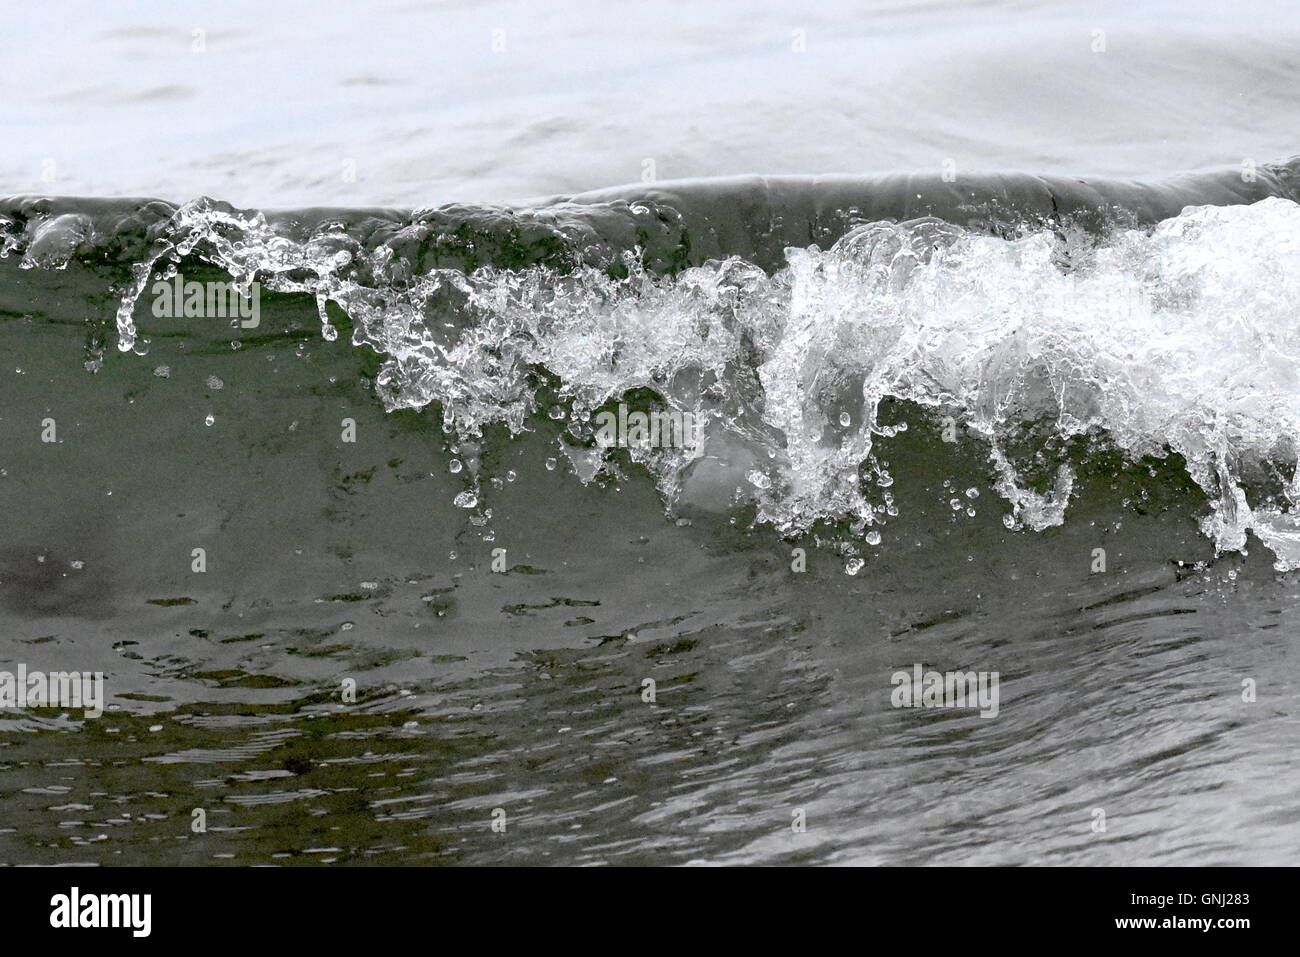 lapping waves in cornwall - Stock Image